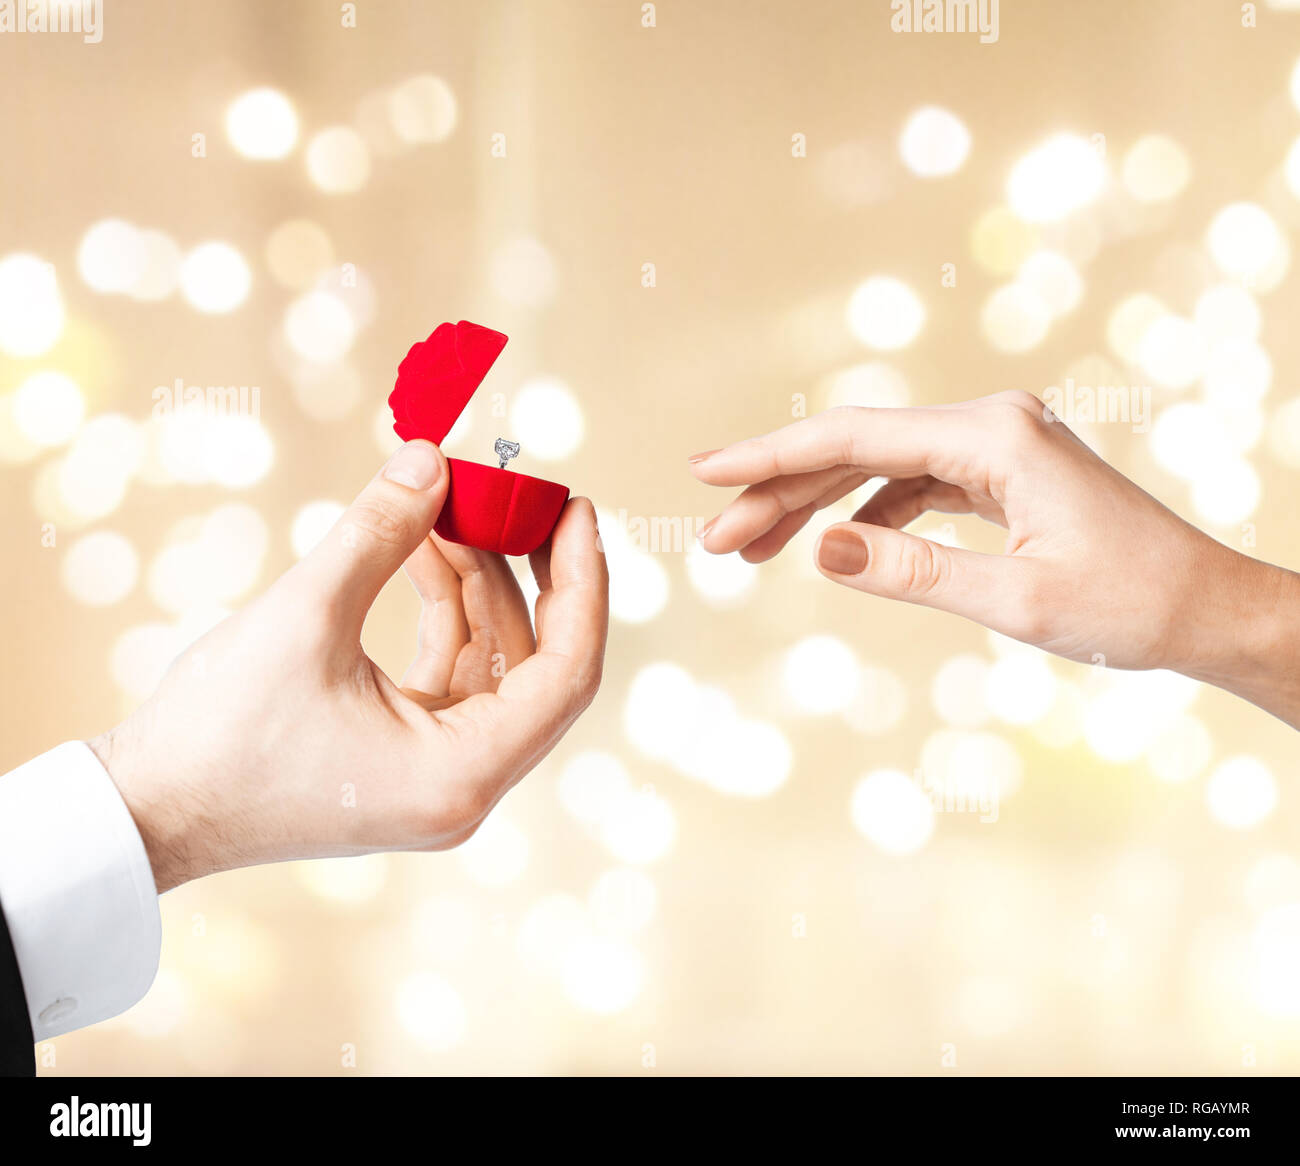 man giving diamond ring to woman on valentines day - Stock Image